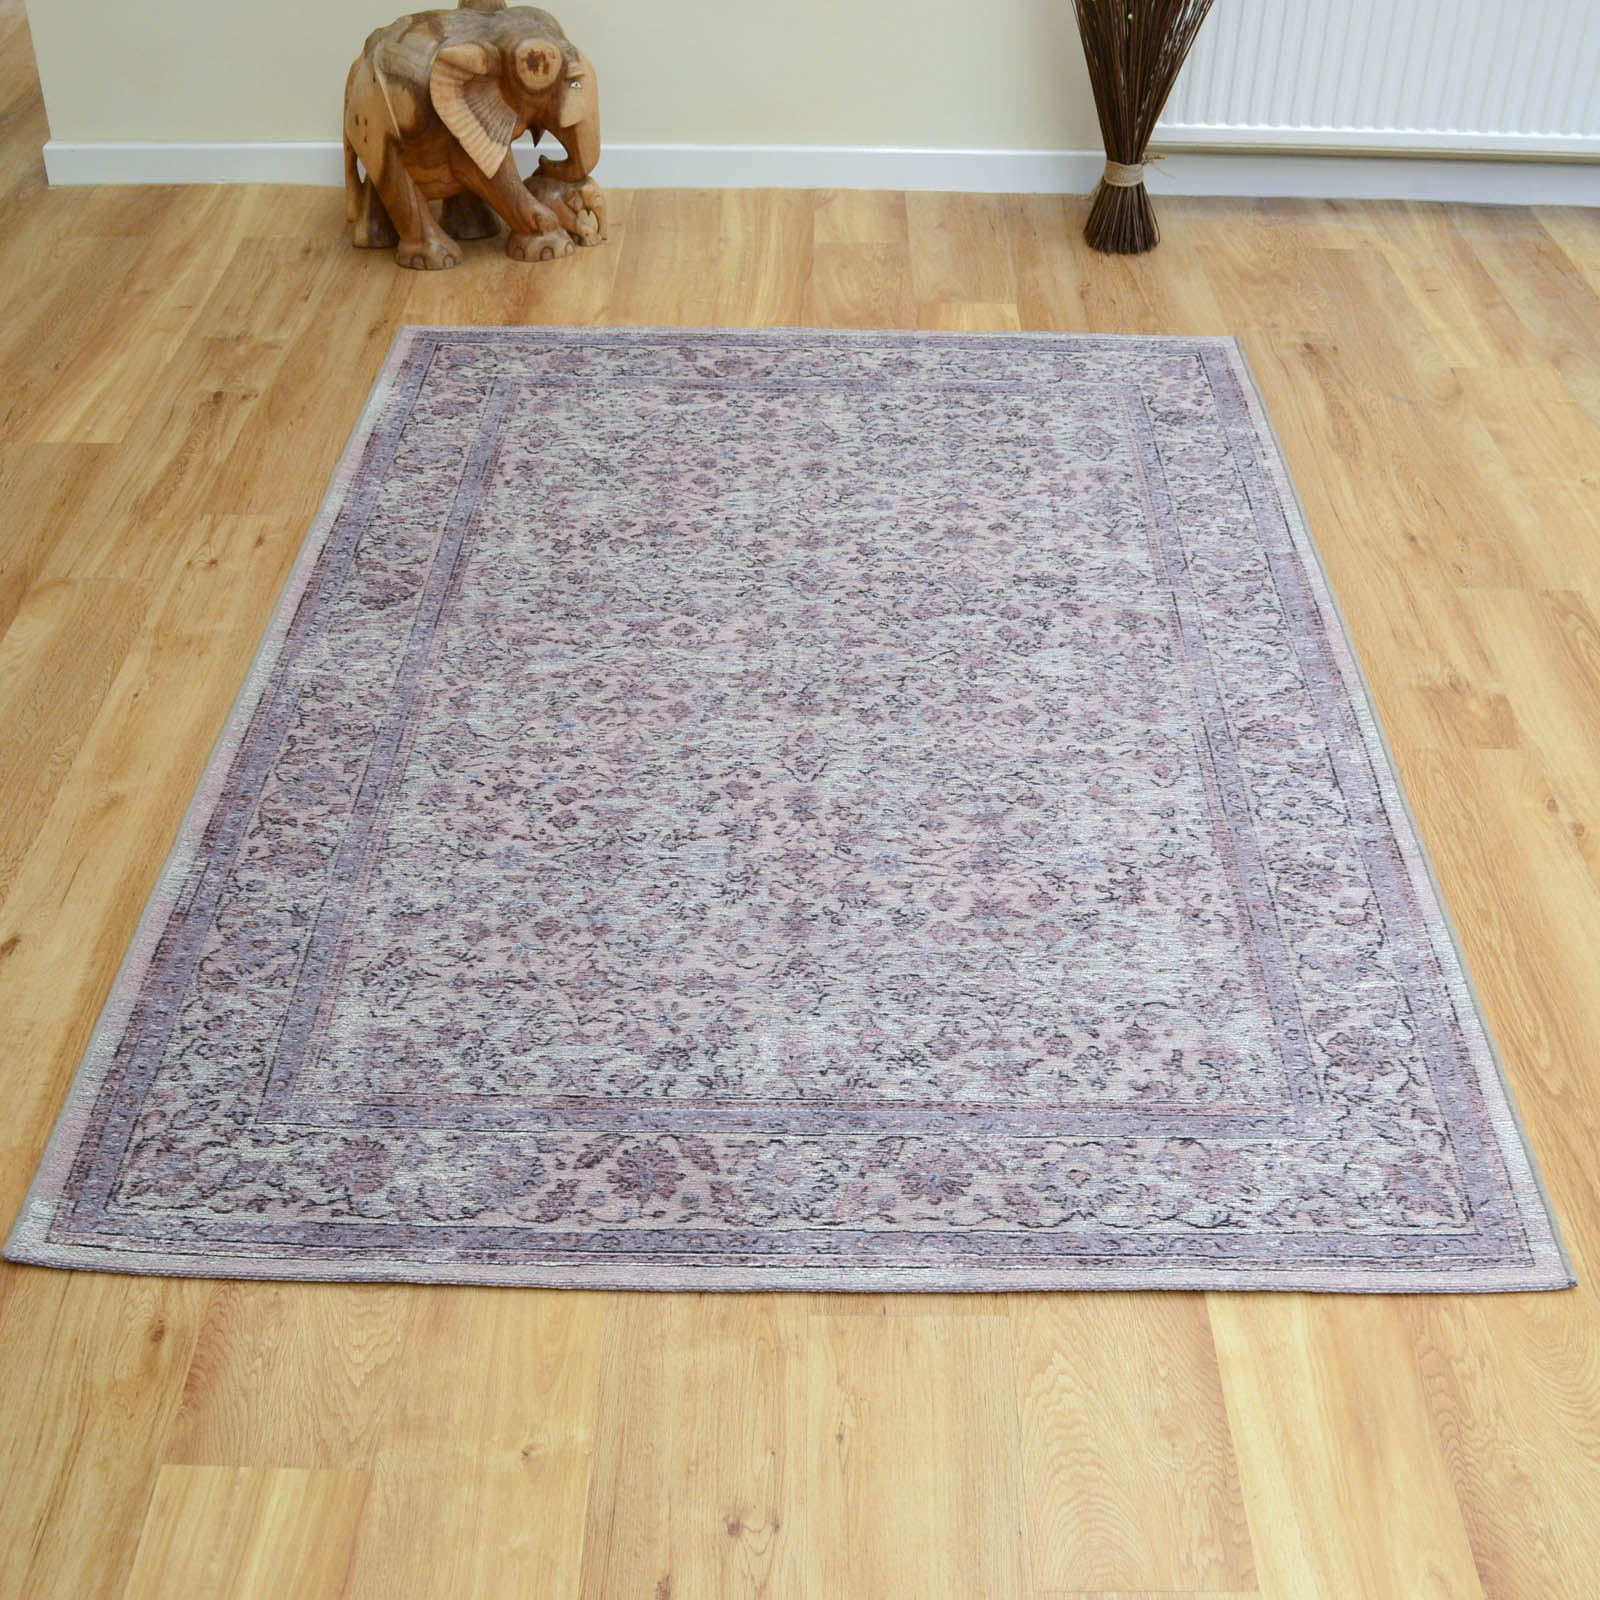 Capri Rugs 91268 8004 in Pink